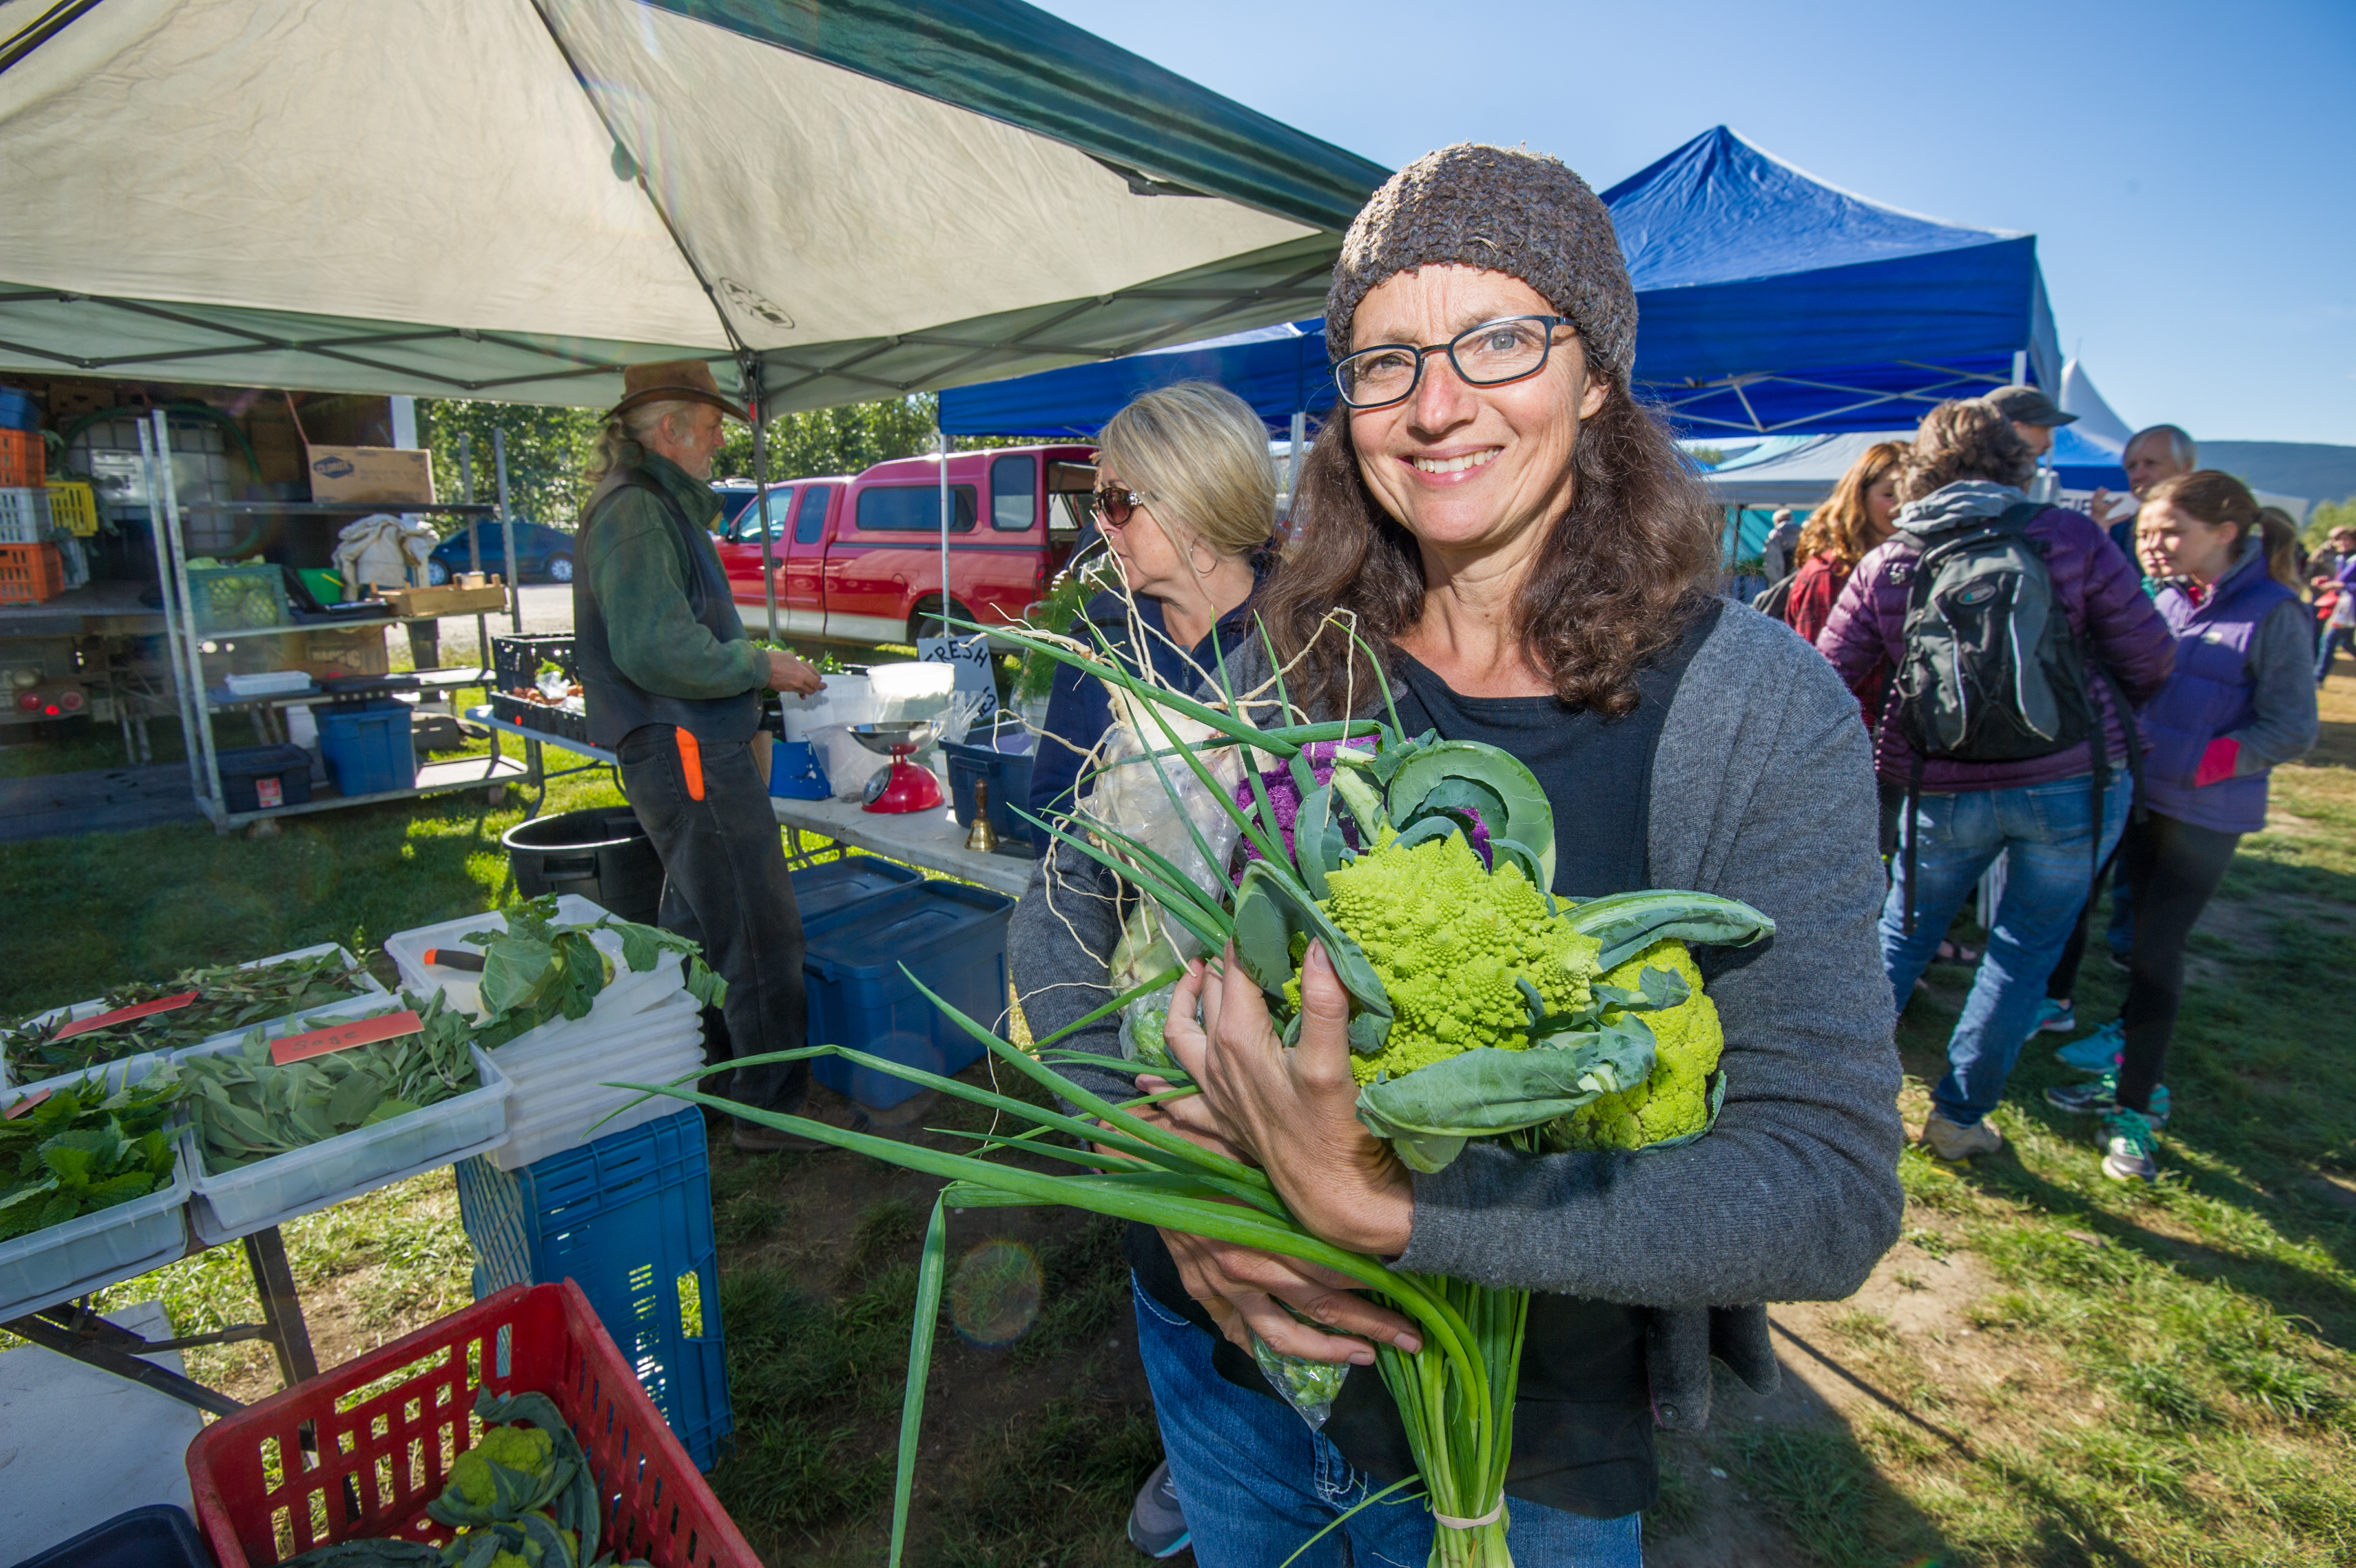 Crocker shops at the Dawson City Farmers Market. She chose a good time to embark on her local diet, as there has been a boom in local food growers and producers recently. Cathie Archbould